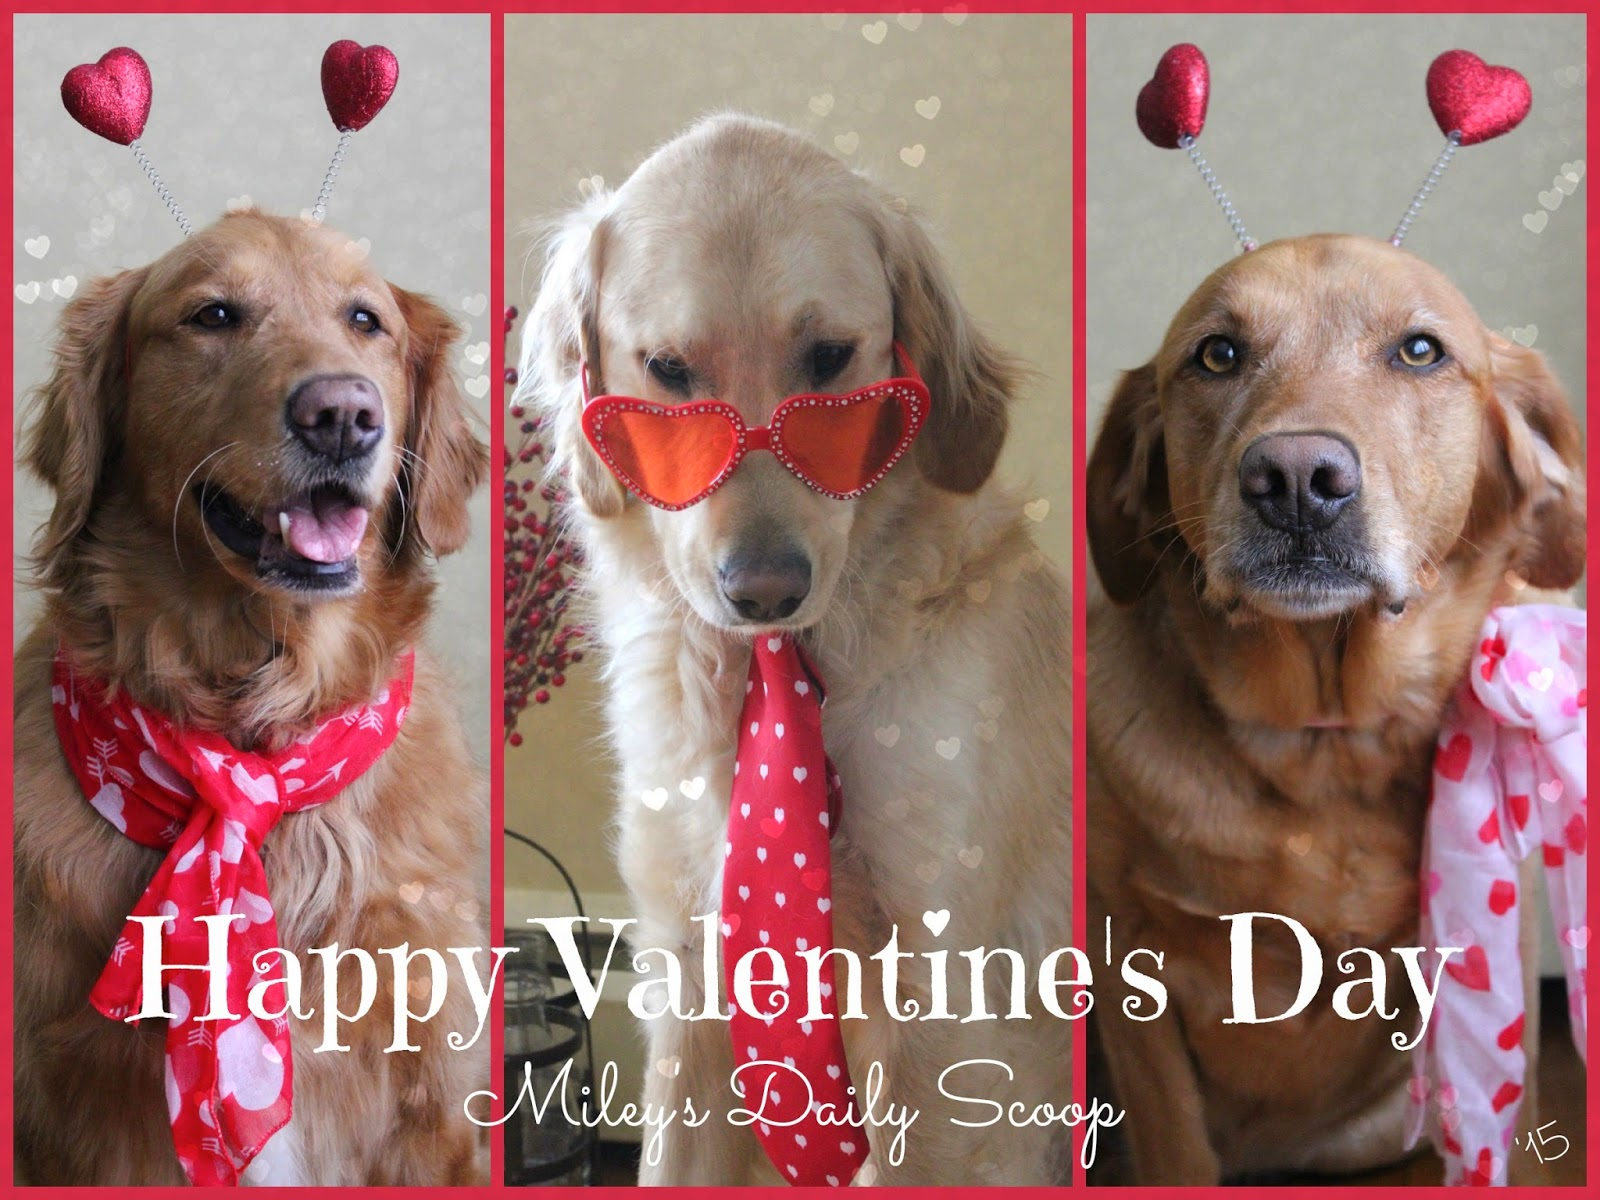 dogs dressed up for valentine's day